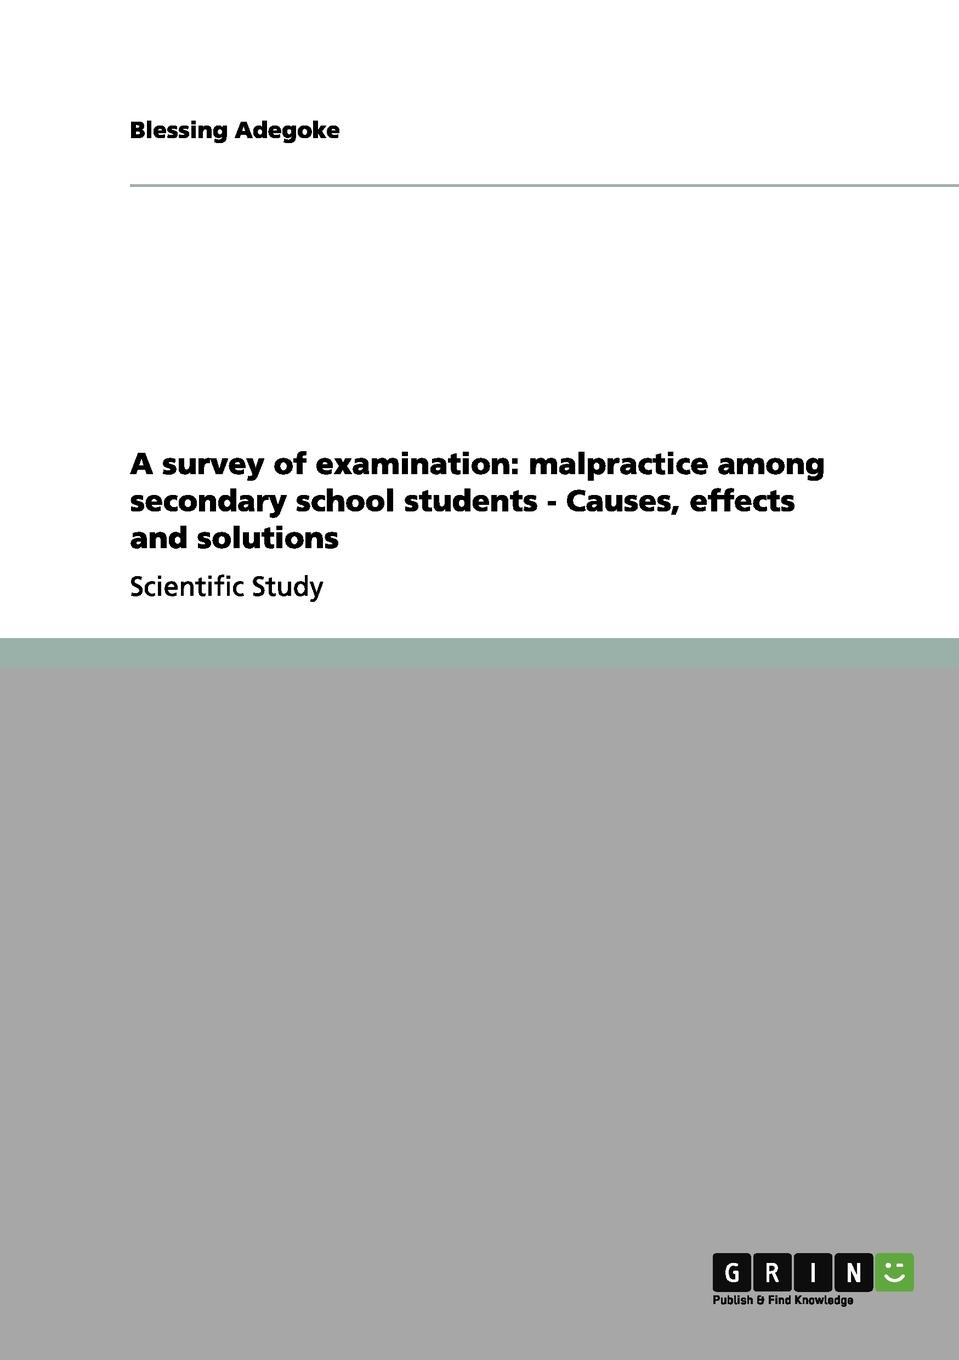 Фото - Blessing Adegoke A survey of examination. malpractice among secondary school students - Causes, effects and solutions musculoskeletal examination of the spine making the complex simple